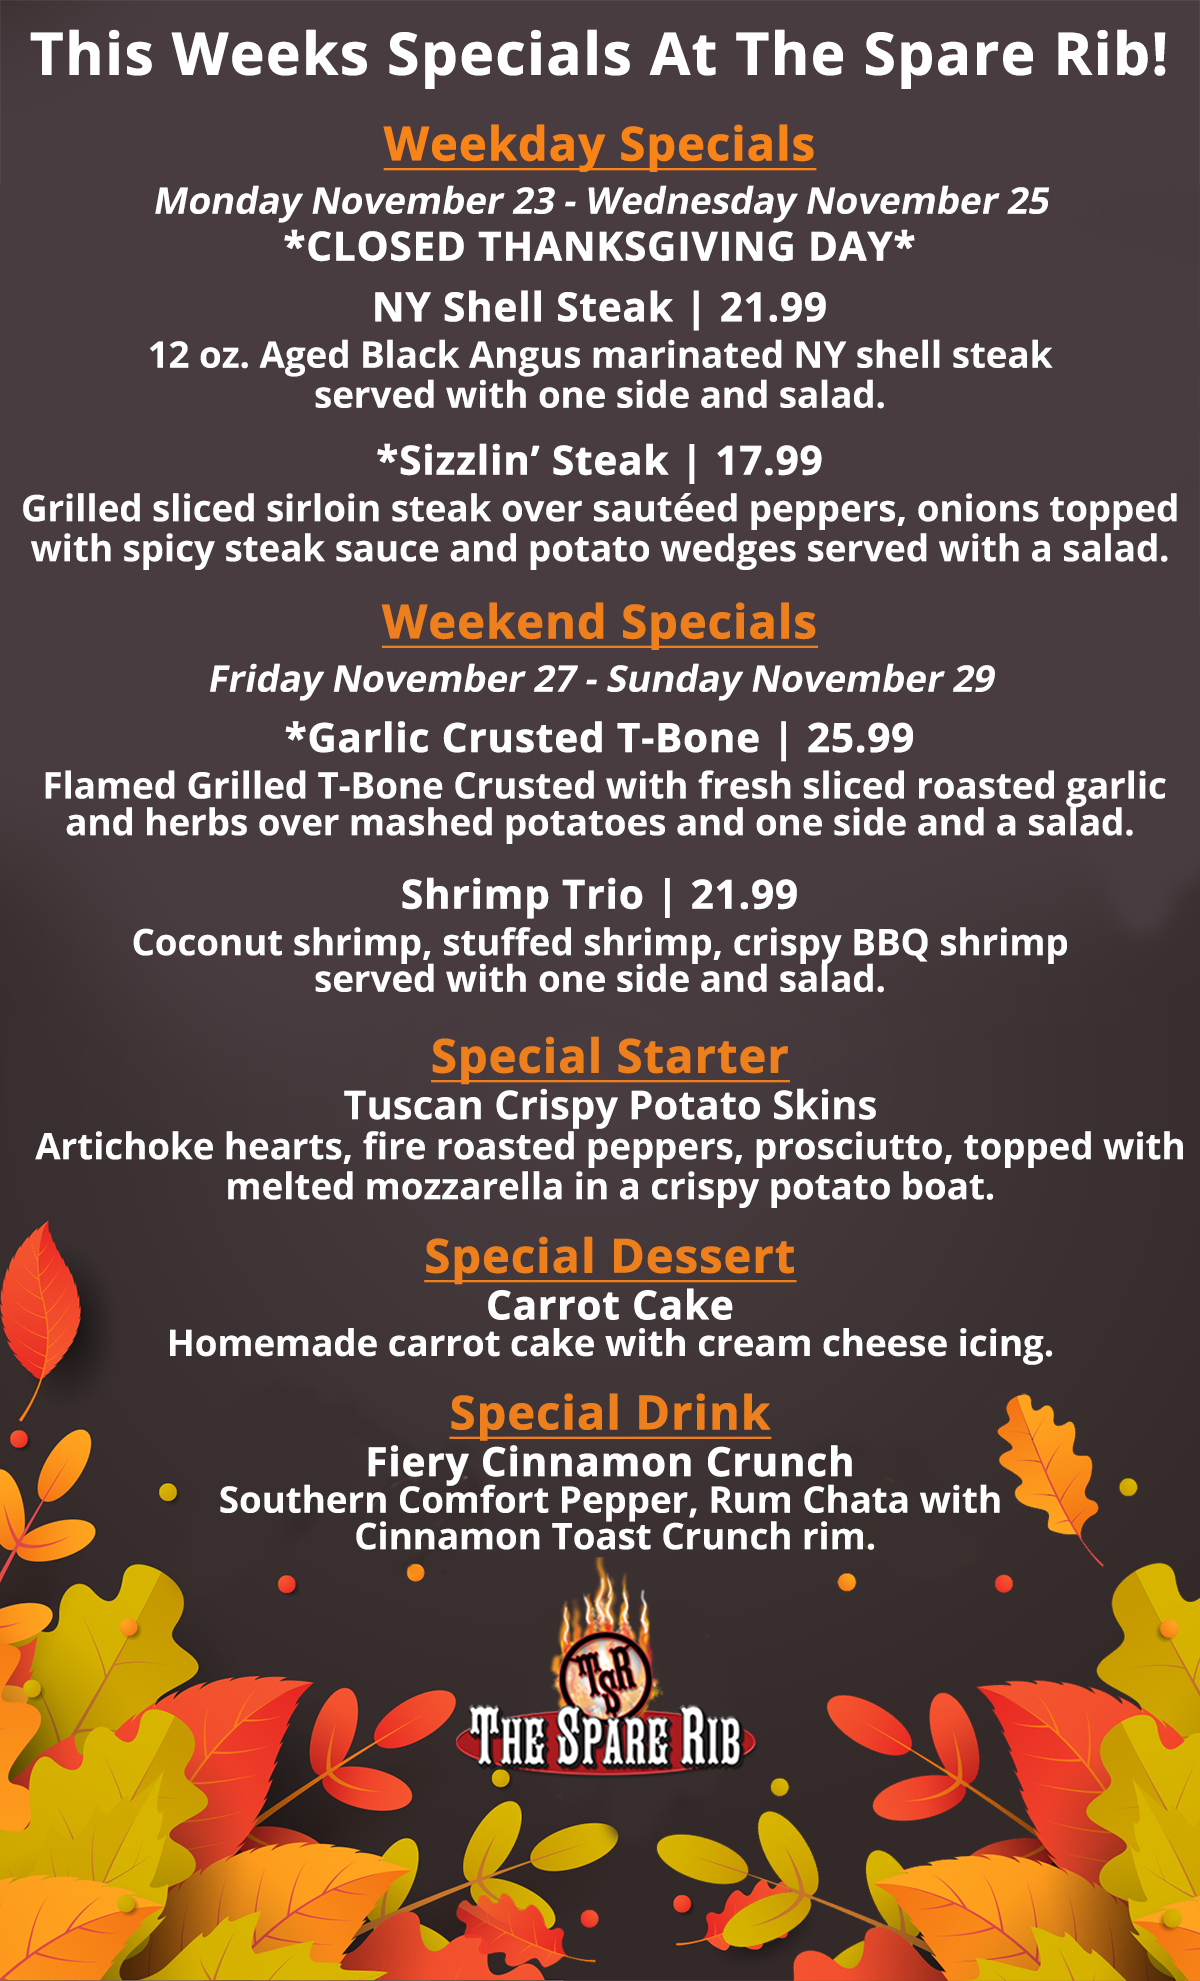 Weekday Specials: Monday November 23 - Wednesday November 25. *CLOSED THANKSGIVING DAY* NY Shell Steak, 21.99. 12 oz. Aged Black Angus marinated NY shell steak served  with one side and salad. *Sizzlin' Steak, 17.99. Grilled sliced sirloin steak over sautéed peppers, onions topped with spicy steak sauce and potato wedges served with a salad. Weekend Specials: Friday November 27 - Sunday November 29. *Garlic Crusted T-Bone, 25.99.  Flamed Grilled T-Bone Crusted with fresh sliced roasted garlic and herbs over mashed potatoes and one side and a salad. Shrimp Trio, 21.99. Coconut shrimp, stuffed shrimp, crispy BBQ shrimp served with one side and salad. Special Starter - Tuscan Crispy Potato Skins Artichoke hearts, fire roasted peppers, prosciutto, topped with melted mozzarella in a crispy potato boat. Special Dessert - Carrot Cake Homemade carrot cake with cream cheese icing. Special Drink - Fiery Cinnamon Crunch Southern Comfort Pepper, Rum Chata with Cinnamon Toast Crunch rim.